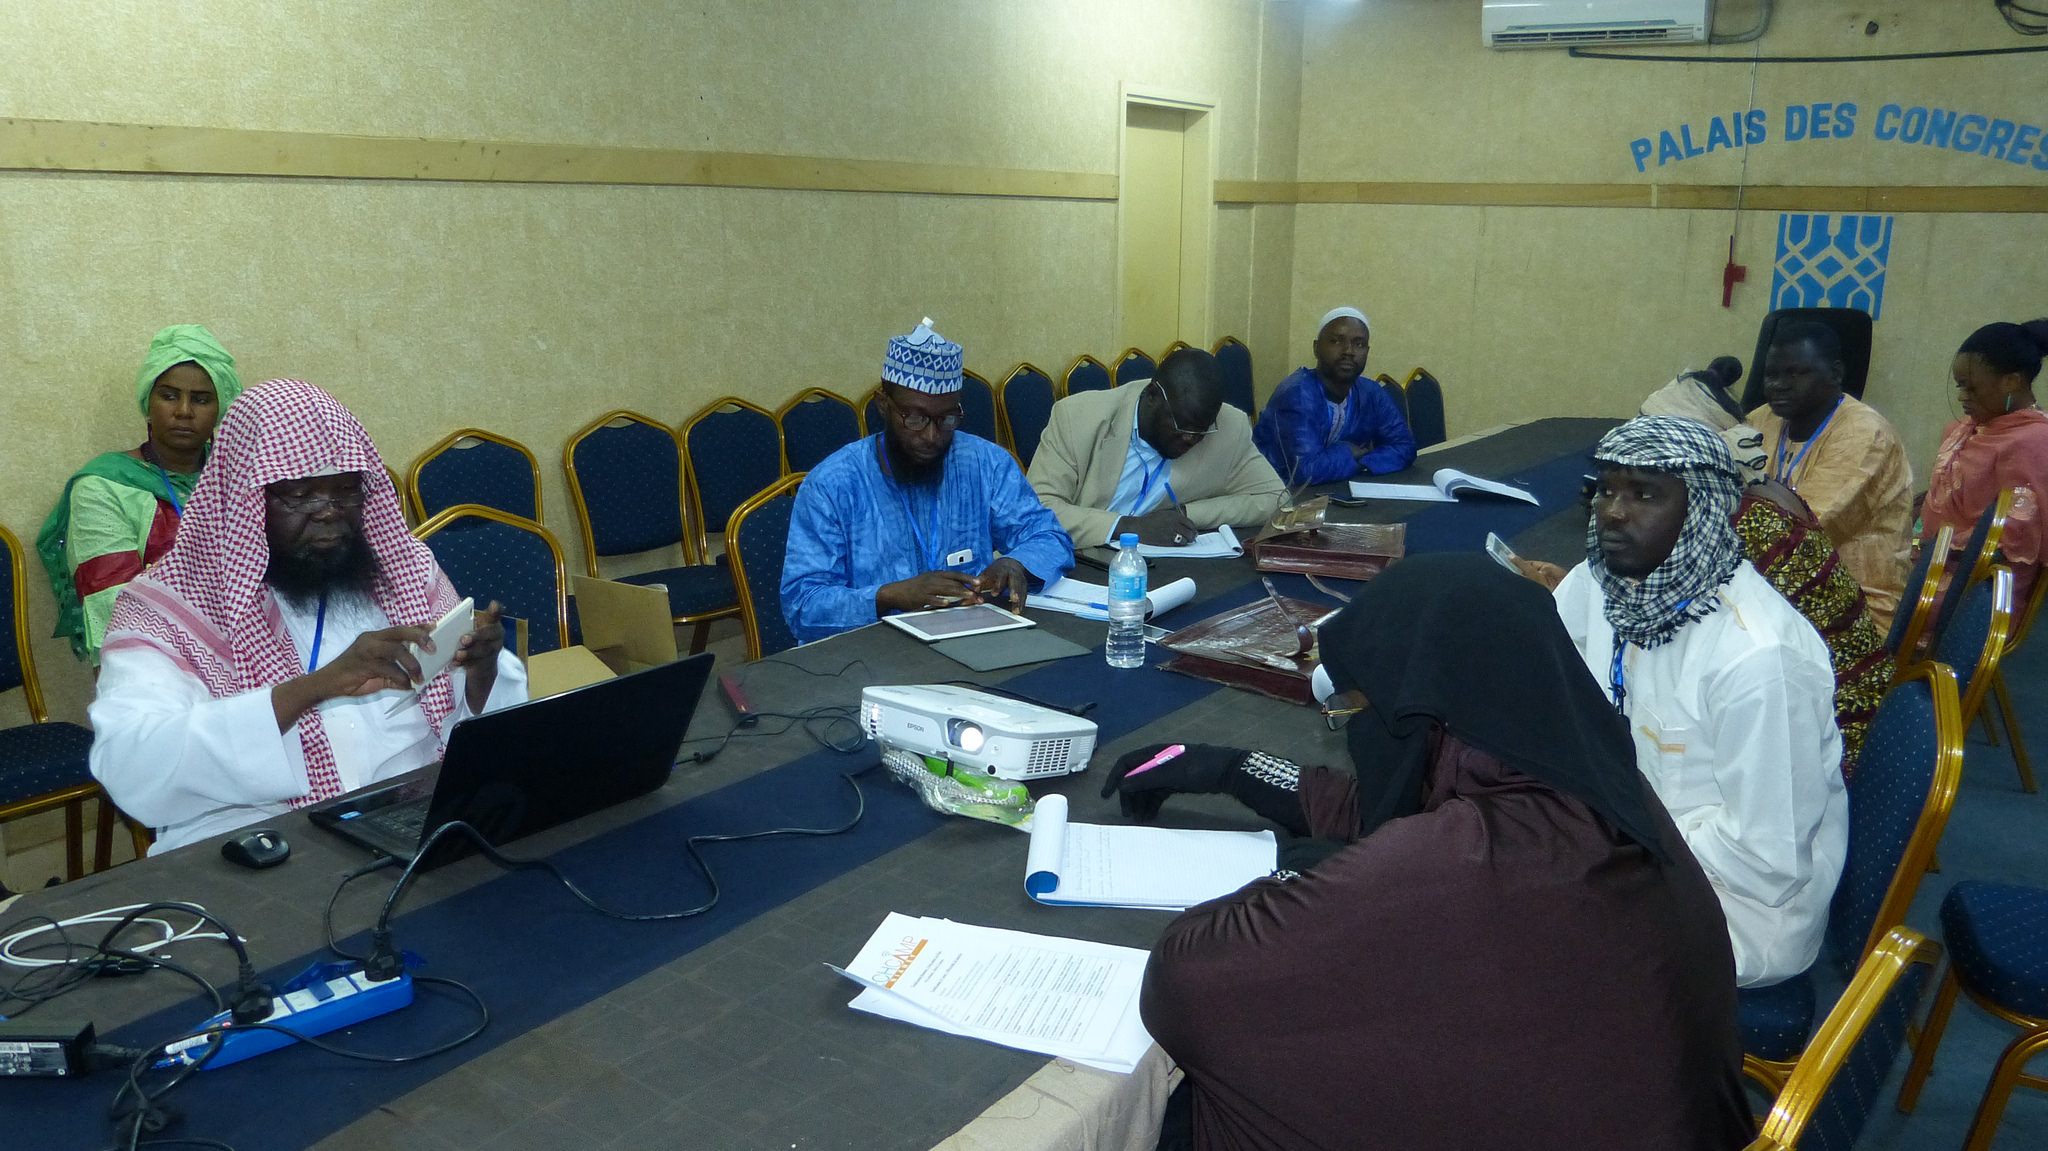 TechCamp Niger participants and trainers work on using technology solutions to promote peace.